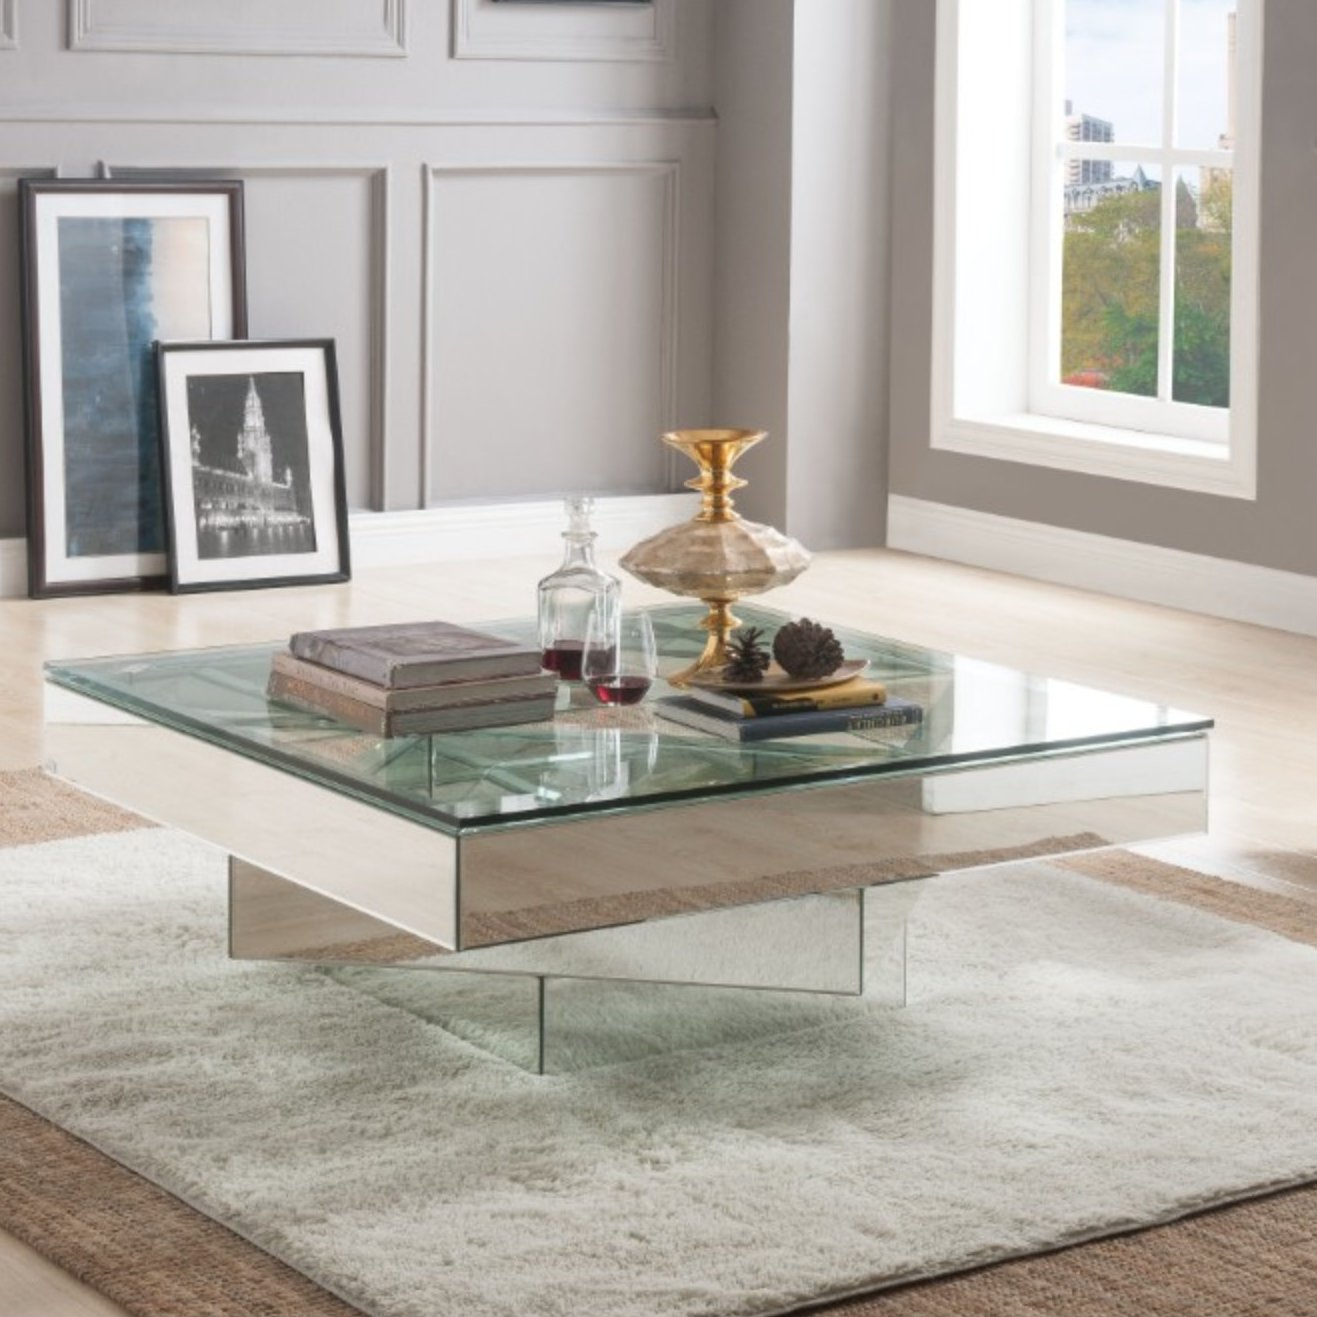 Orren Ellis Ulibarri Modern Square Glass And Mirror Coffee Table inside measurements 1317 X 1317